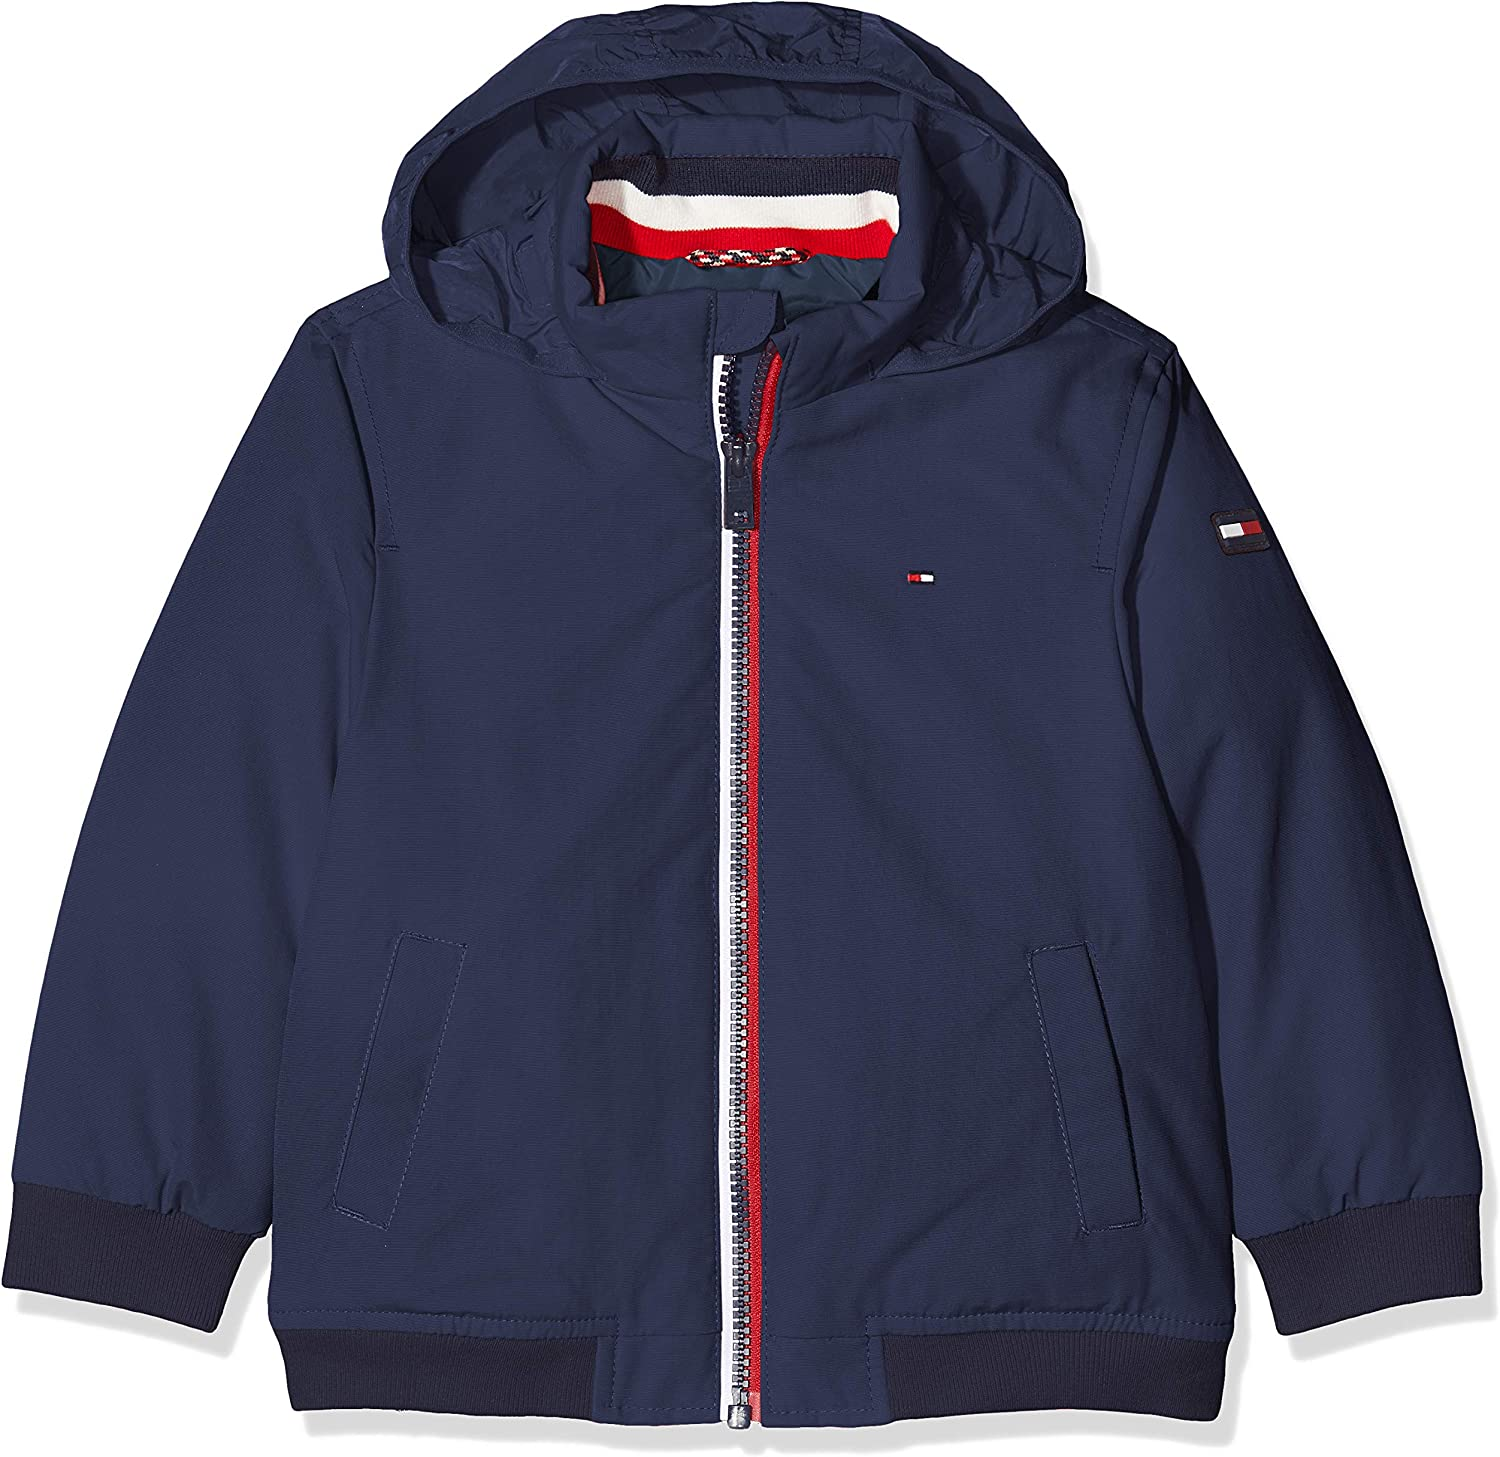 Giacca Bambino Tommy Hilfiger Dg Essential Jacket